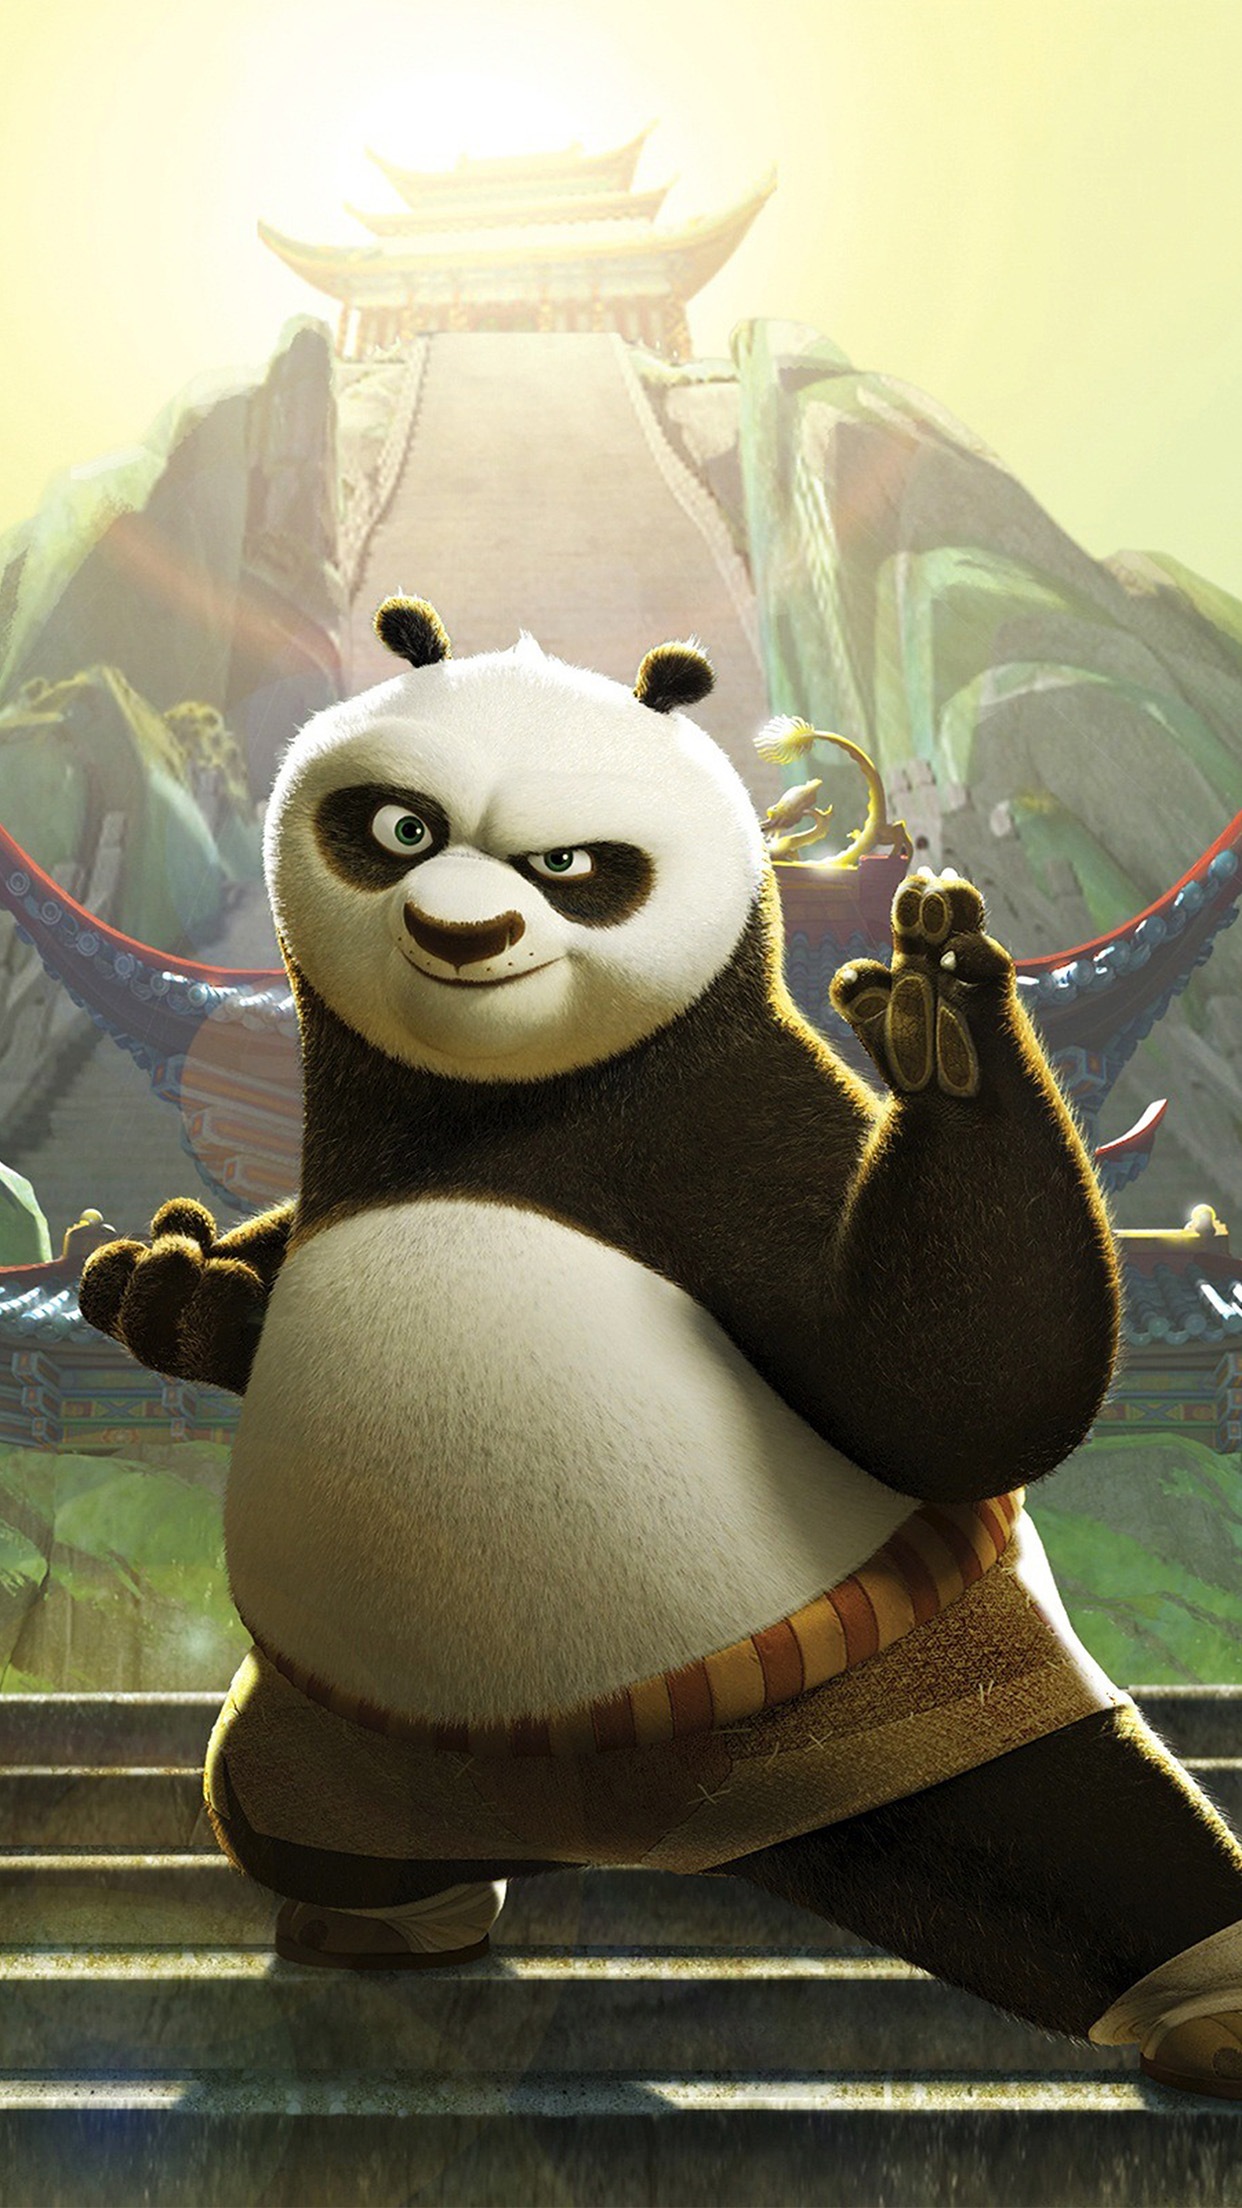 an47-kungfu-panda-dreamworks-animation-art-cute - Papers.co